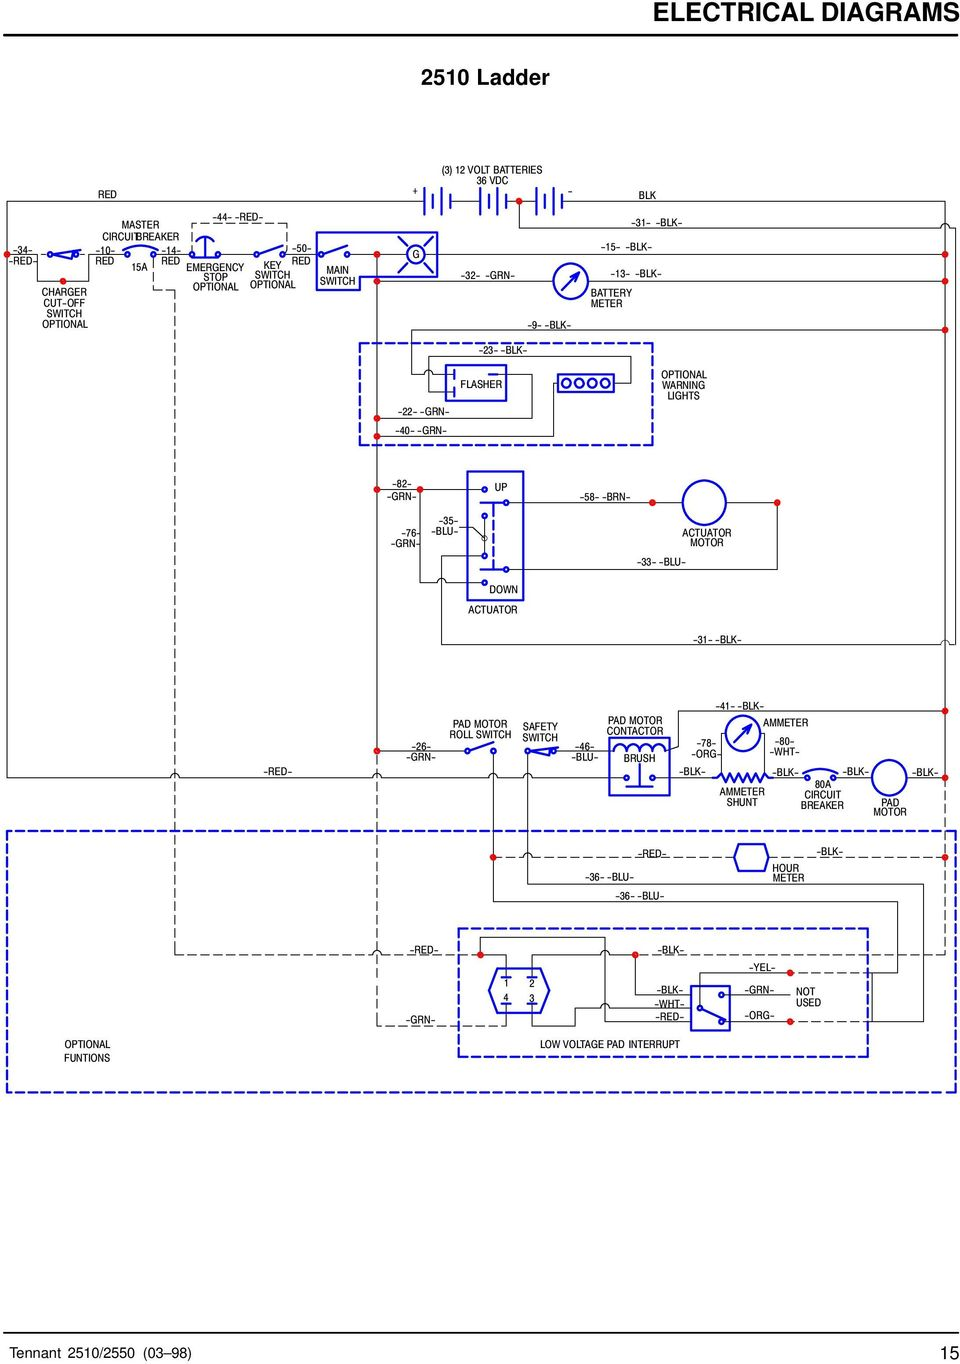 2510 2550 Dust Control Burnisher Operator And Parts Manual Rev 00 Yale Forklift Wiring Diagram On Telephone Box View 4 Electrical Diagrams Tennant 03 98